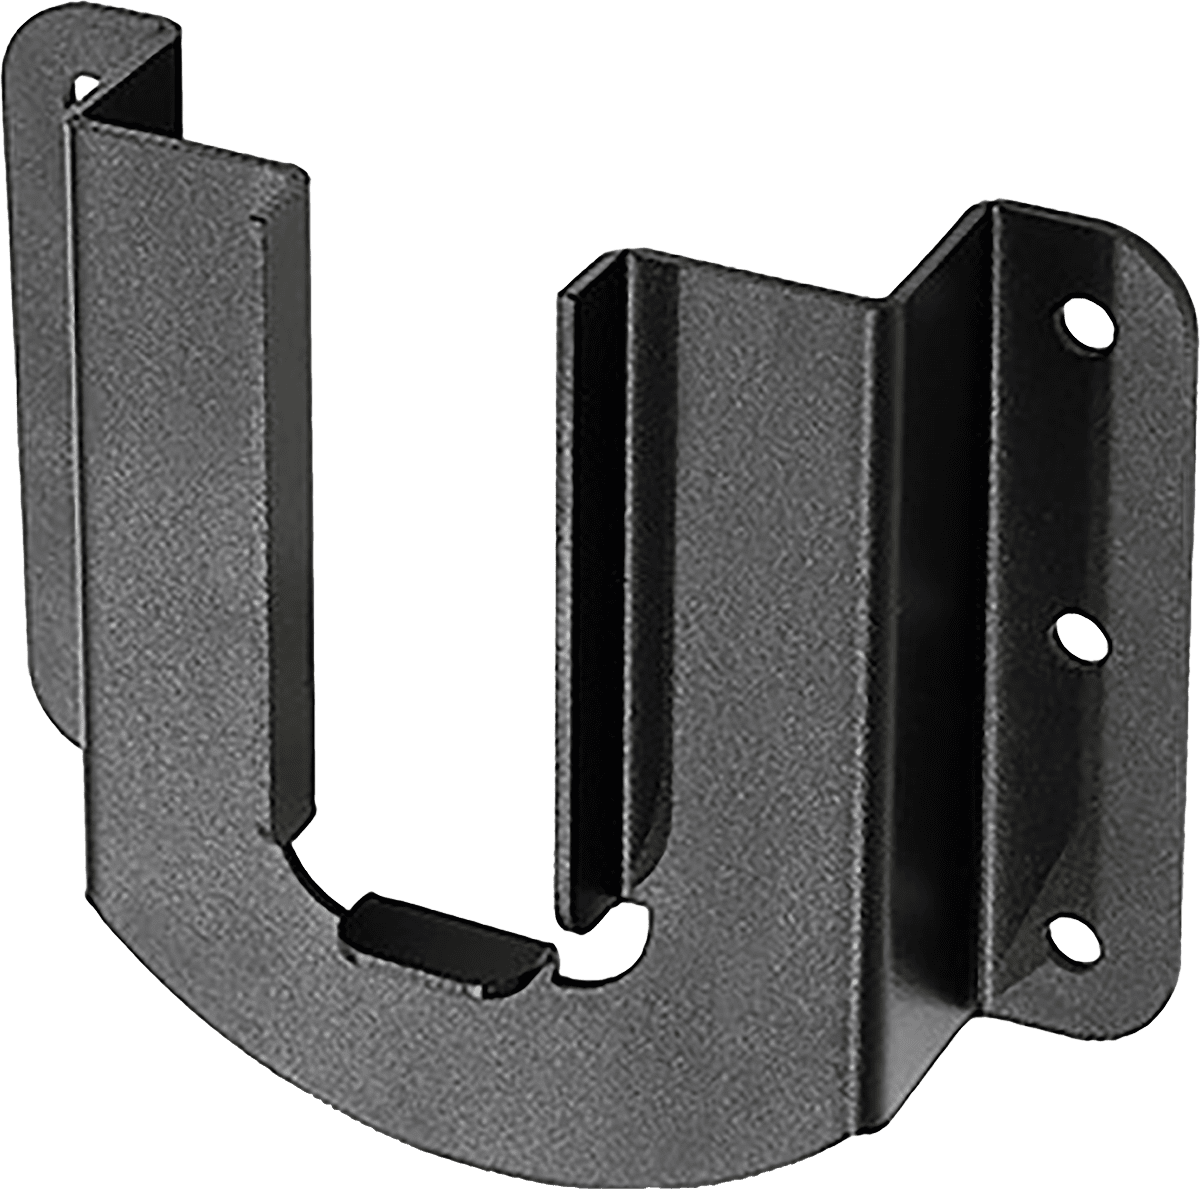 B-air Vent Air Mover Mounting Bracket